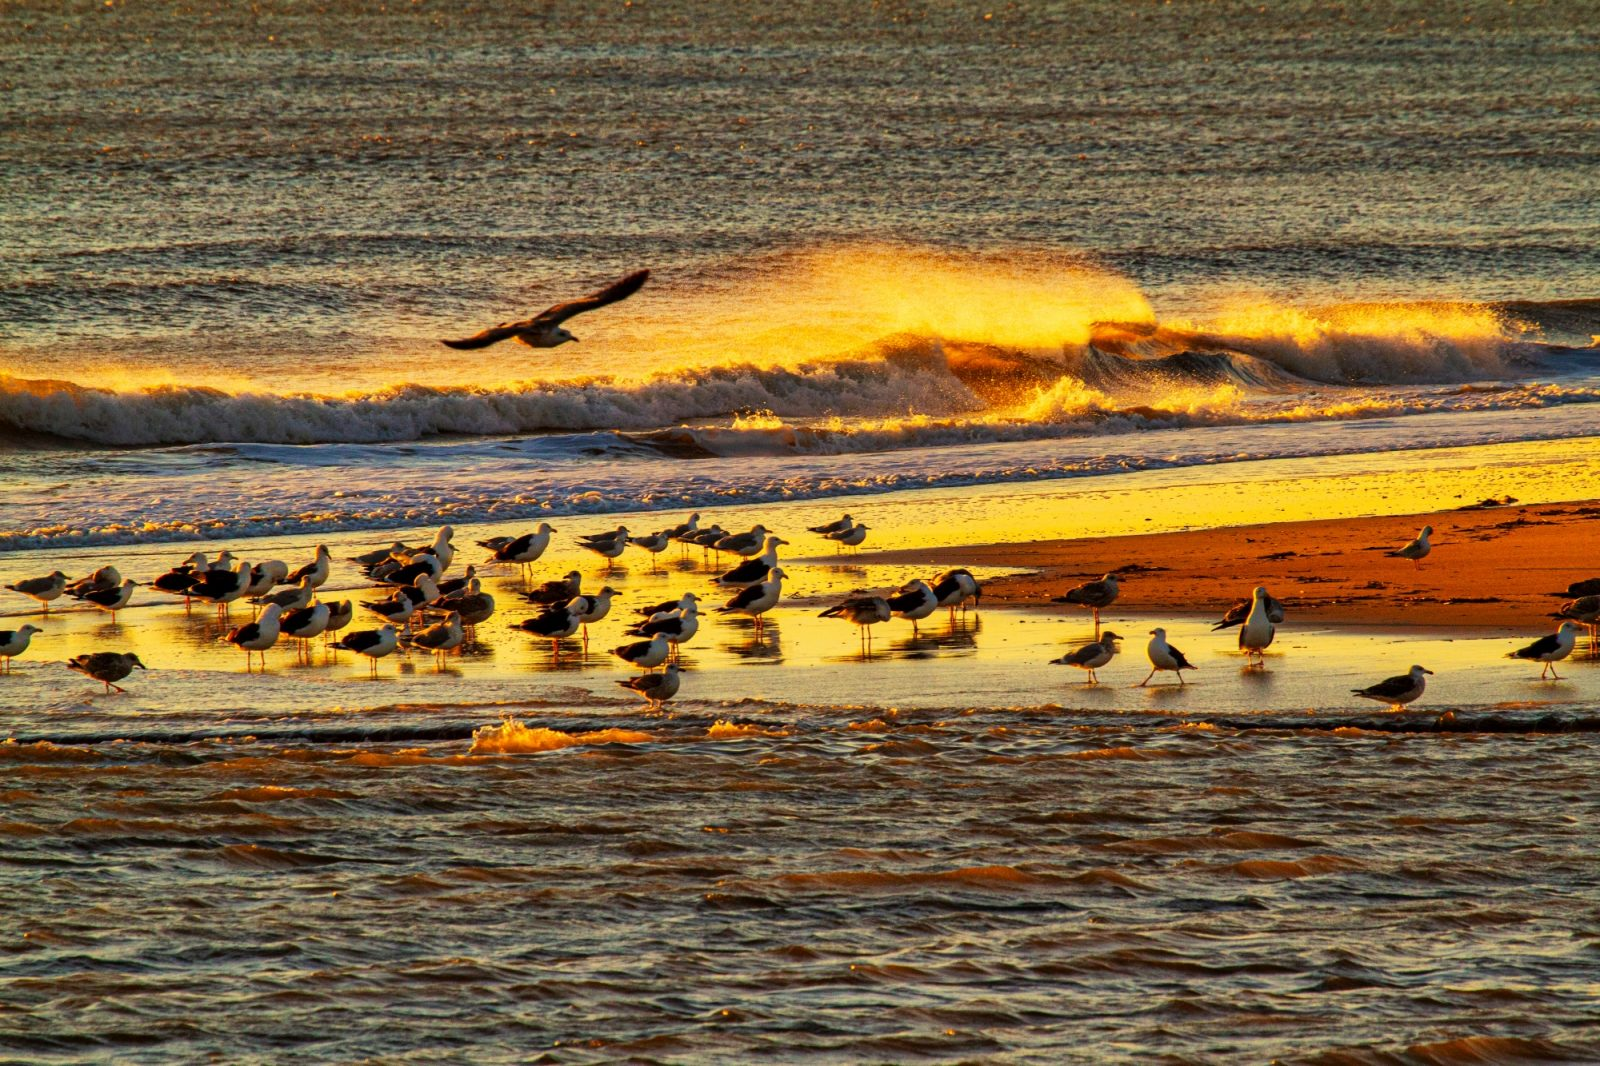 Waves dancing in the sunrise